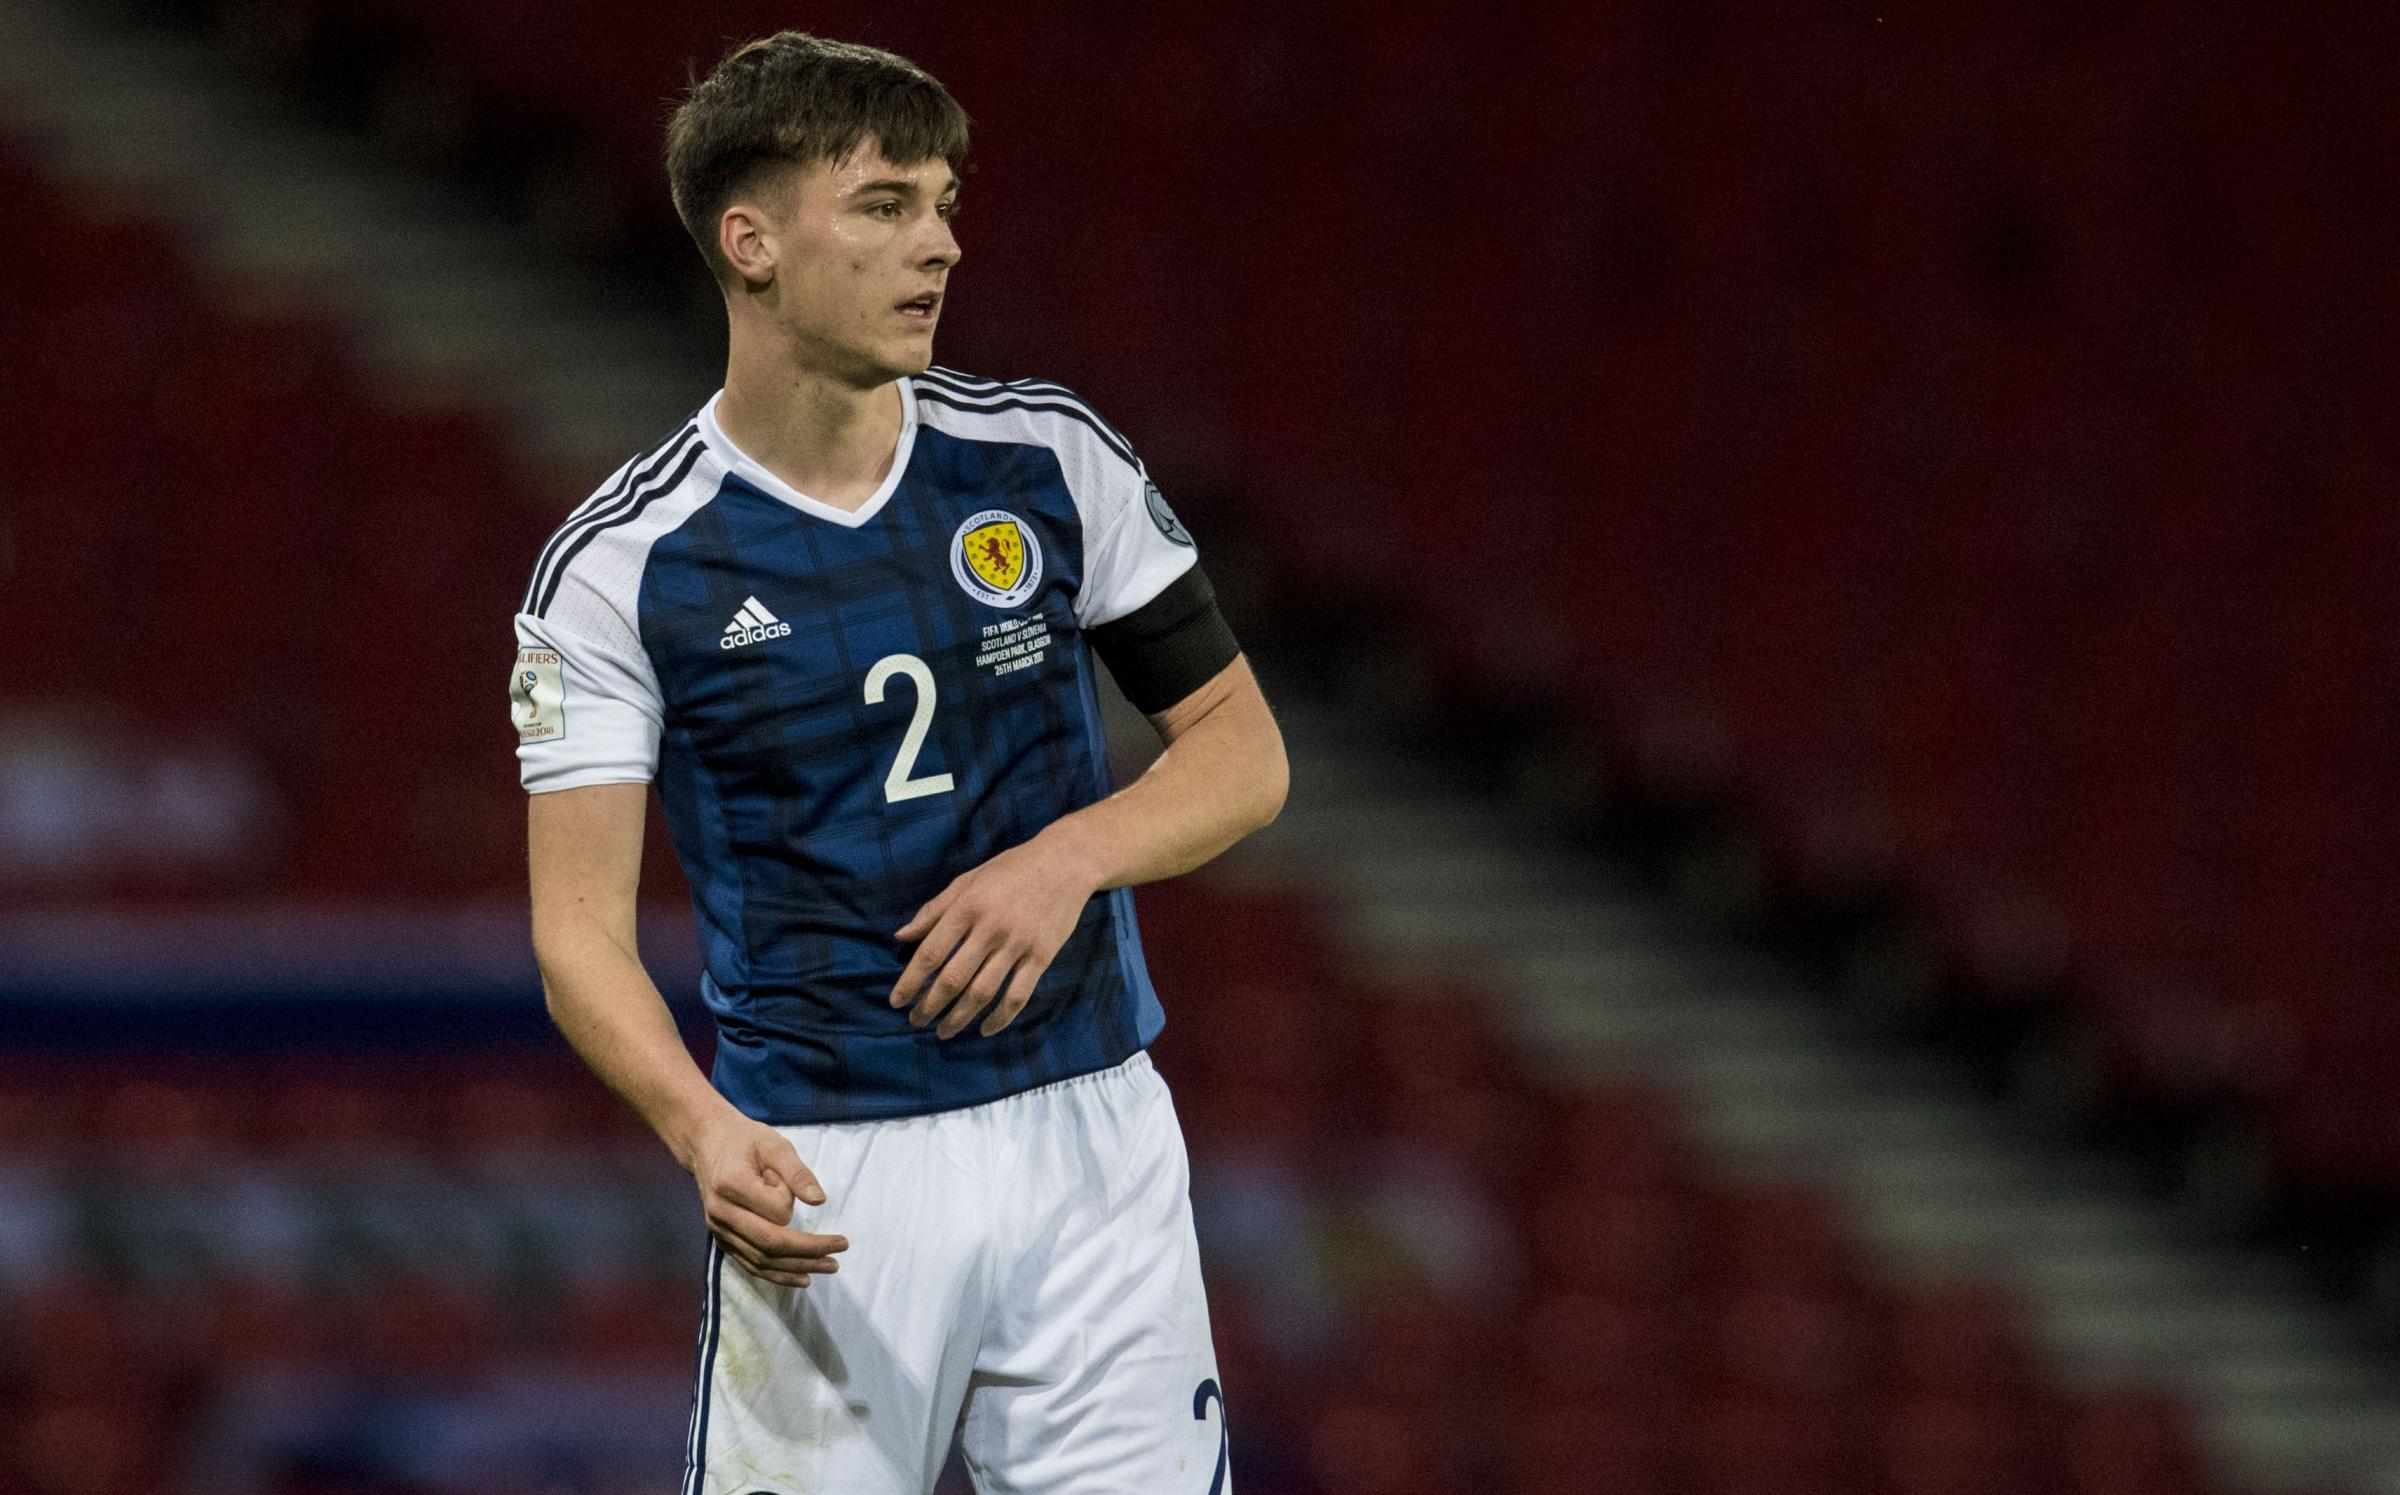 Scotland boss Gordon Strachan confident Kieran Tierney can take latest Danny McGrain comparisons in his stride